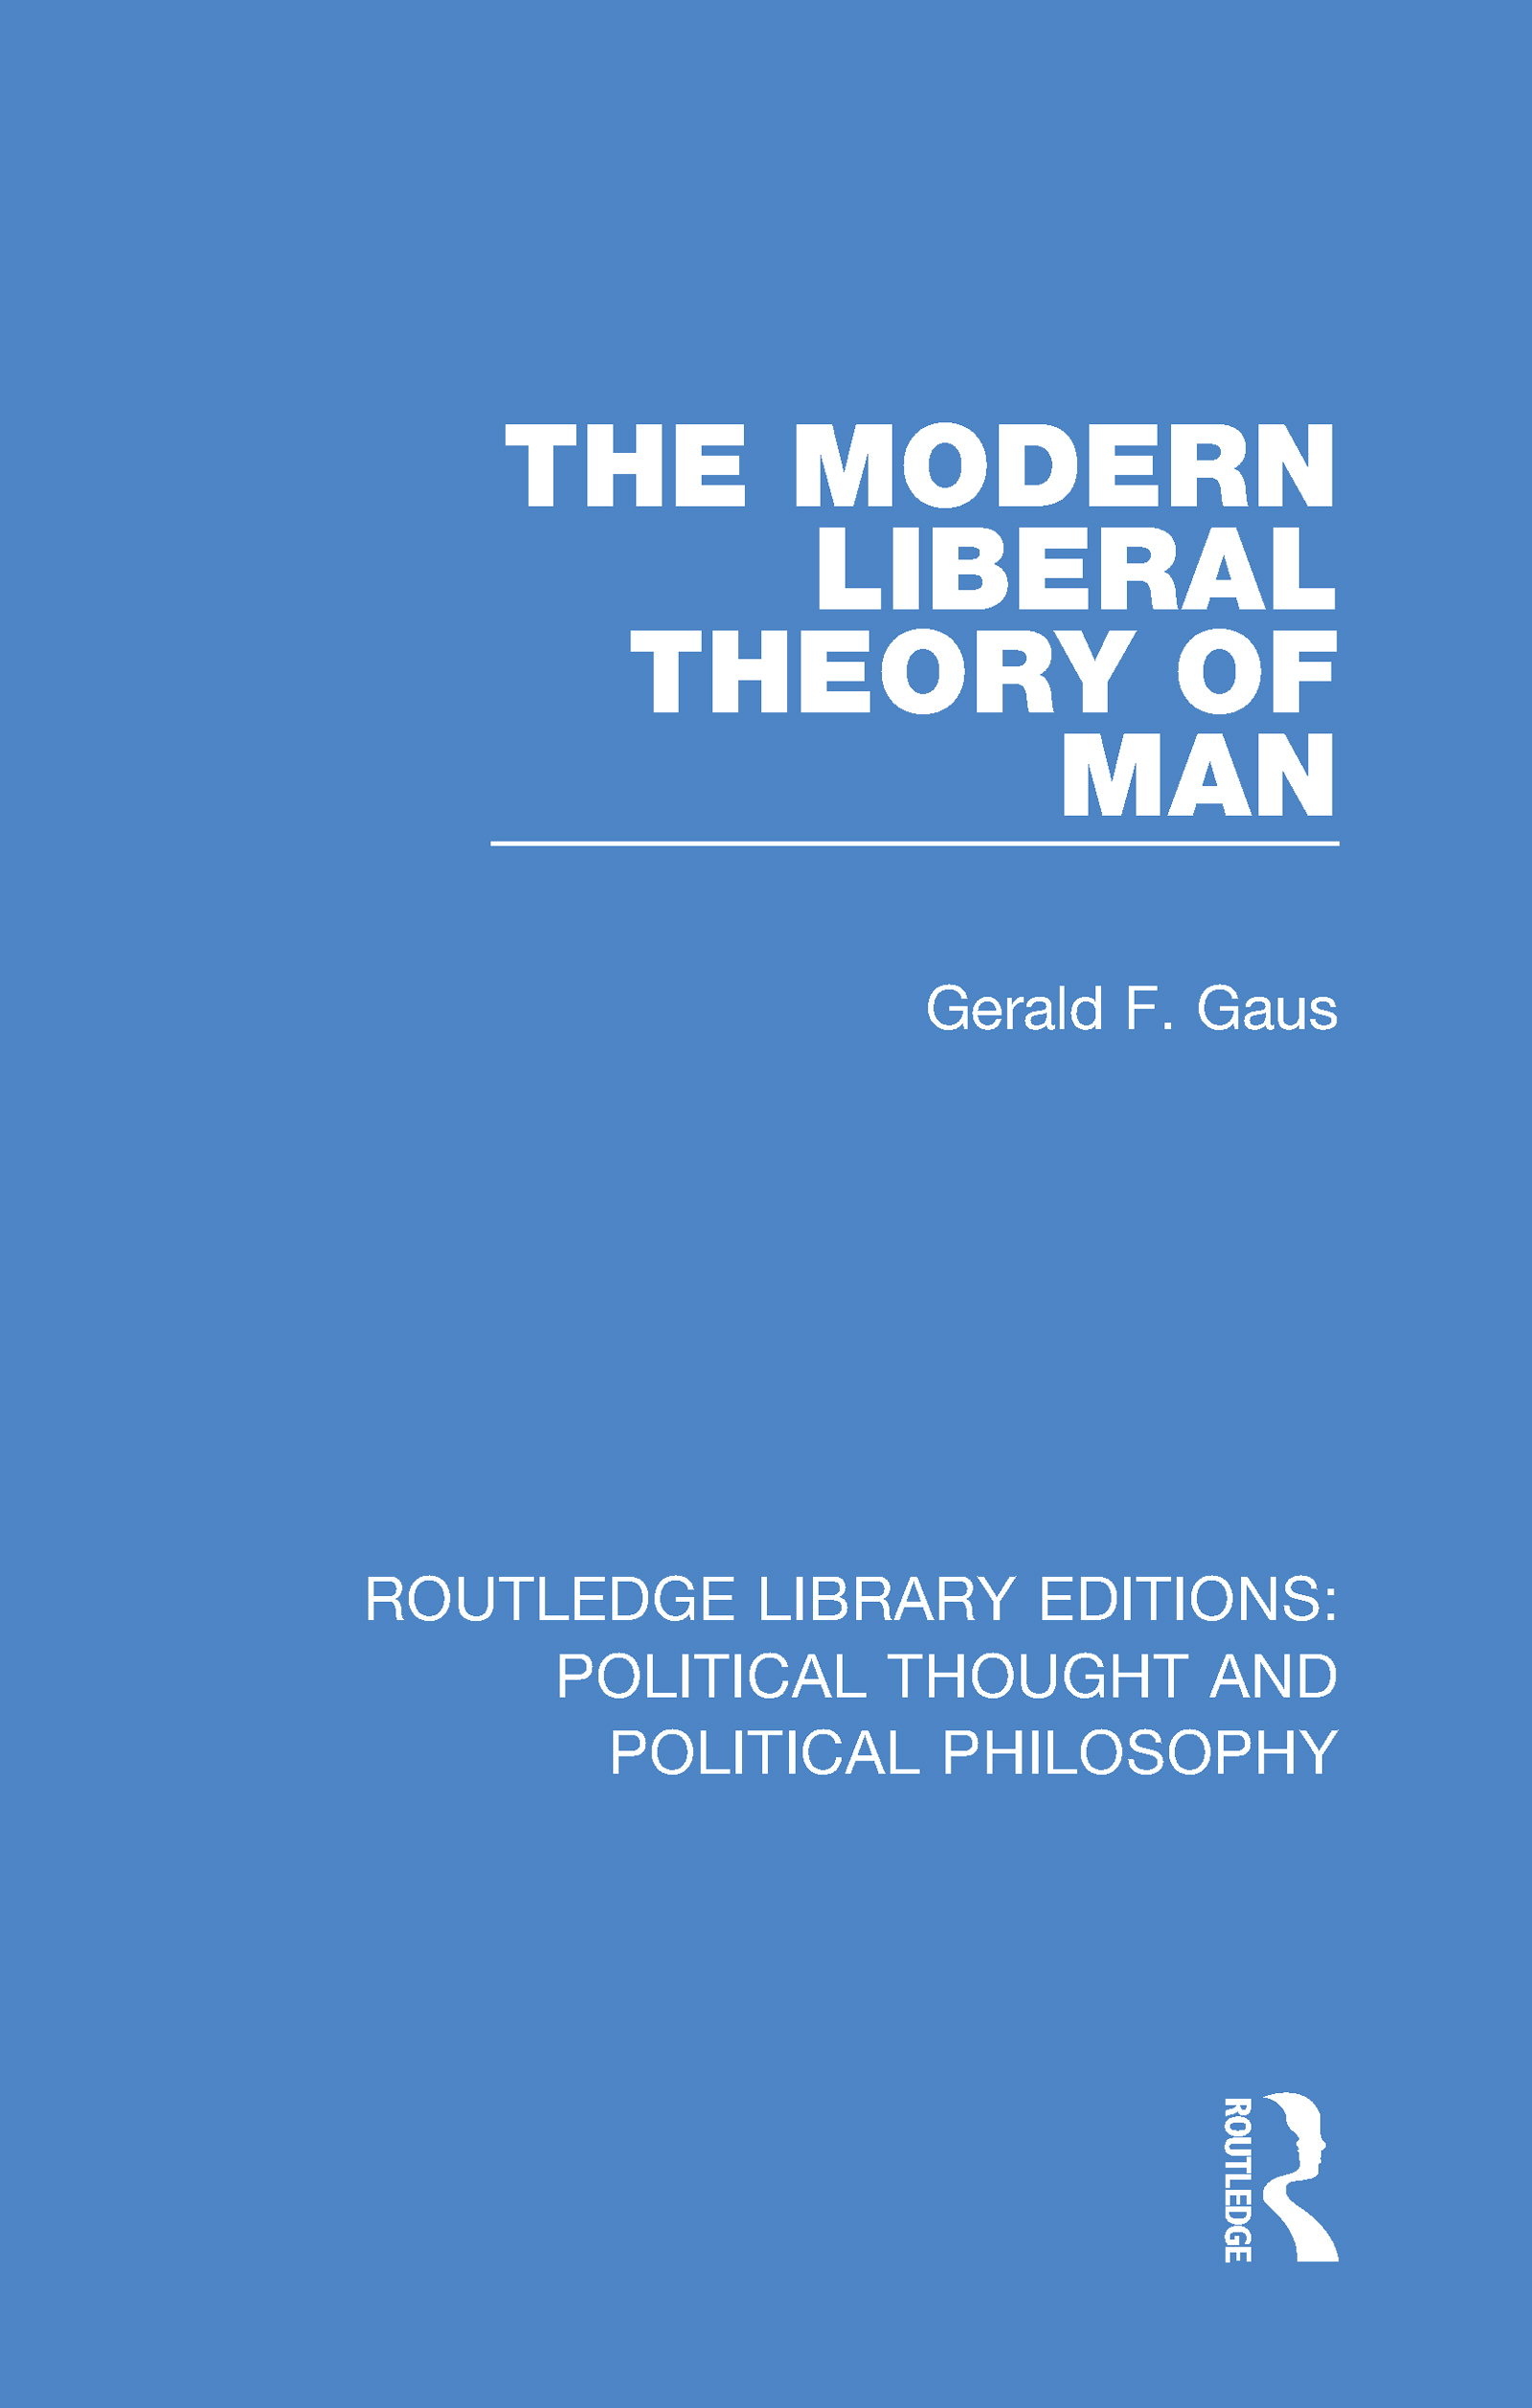 The Modern Liberal Theory of Man